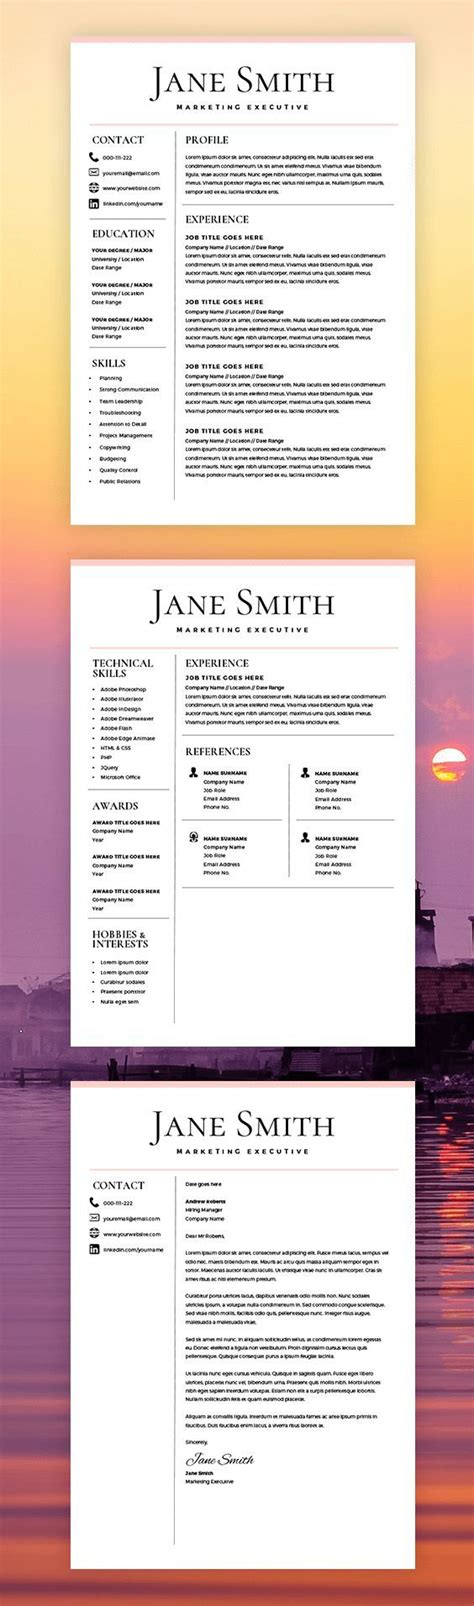 free resume templates for mac computers 25 unique resume templates ideas on resume ideas business resume template and